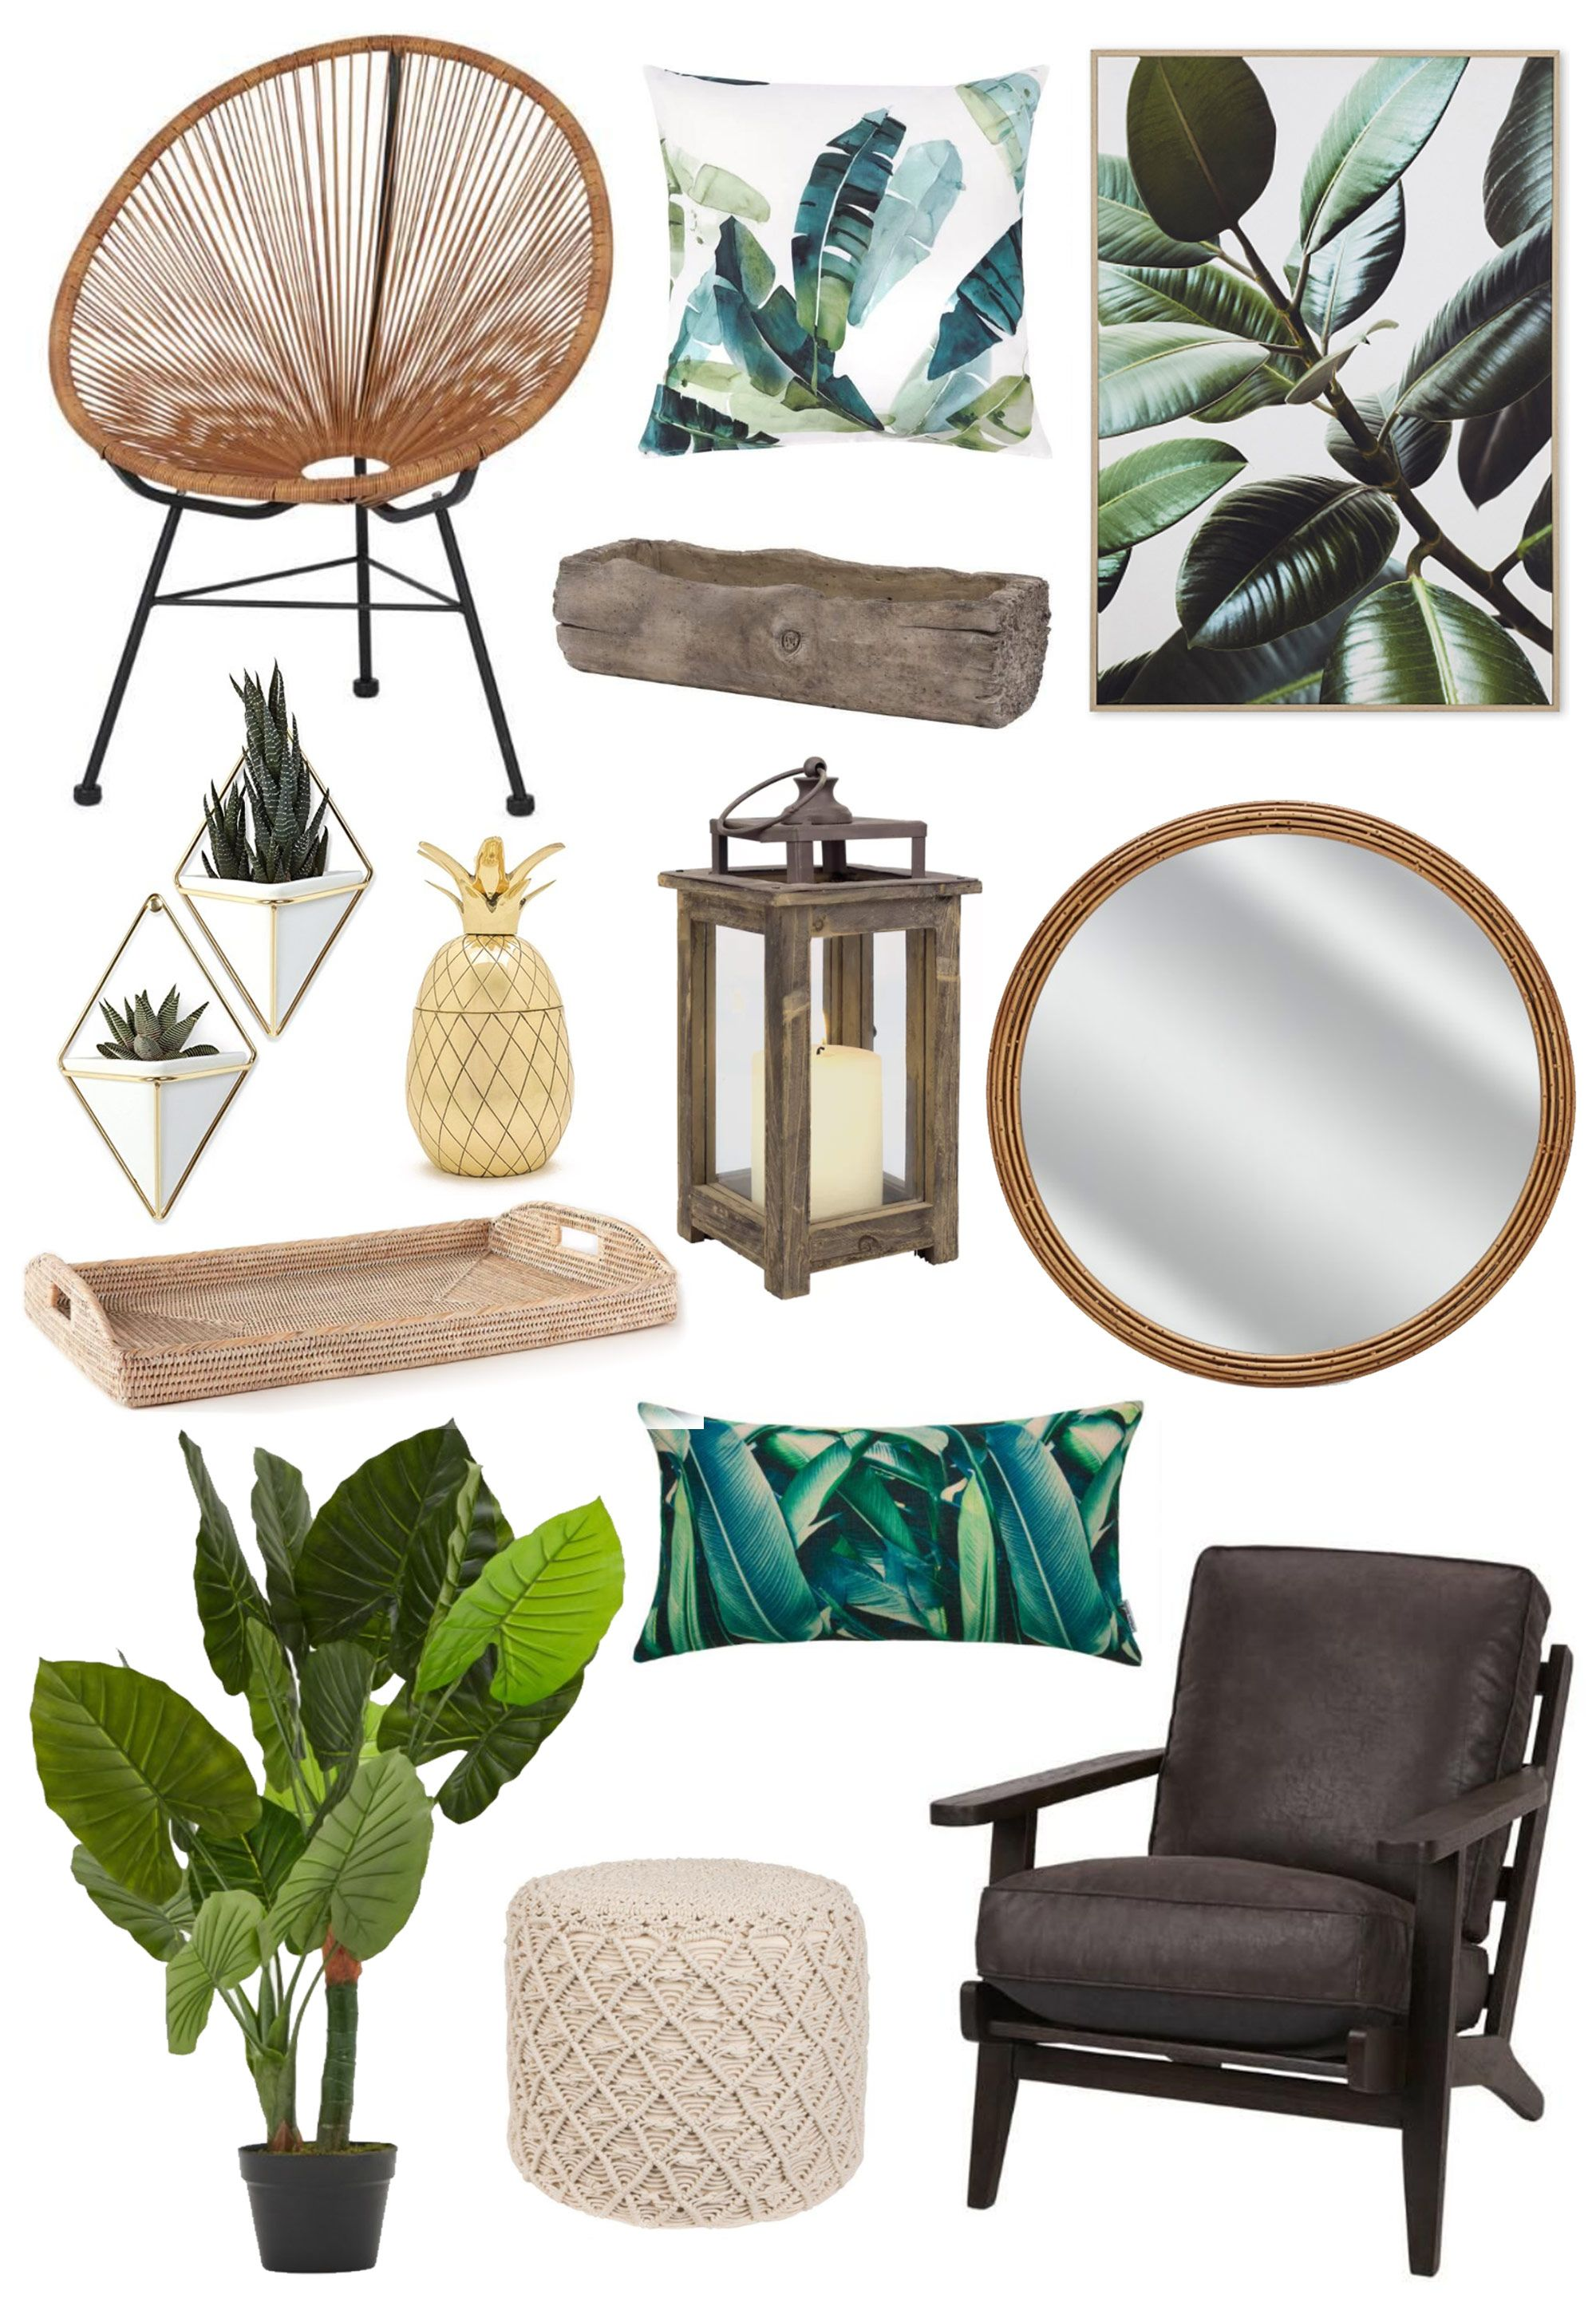 tropical home decor items 3 home decor trends for spring  with images  tropical home decor  tropical home decor